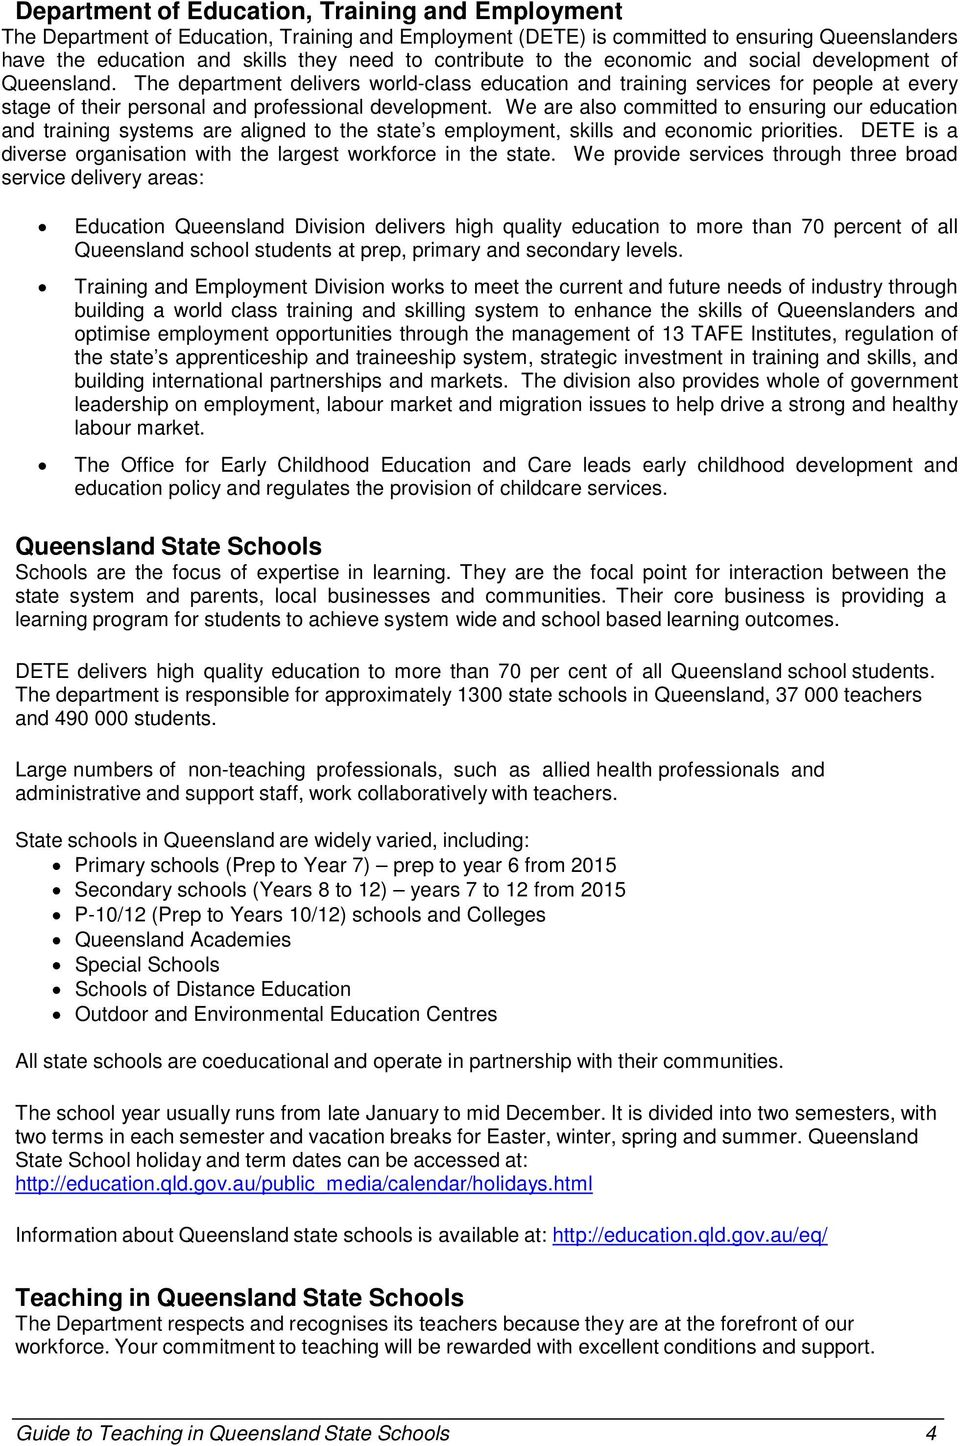 Guide to Teaching in Queensland State Schools - PDF